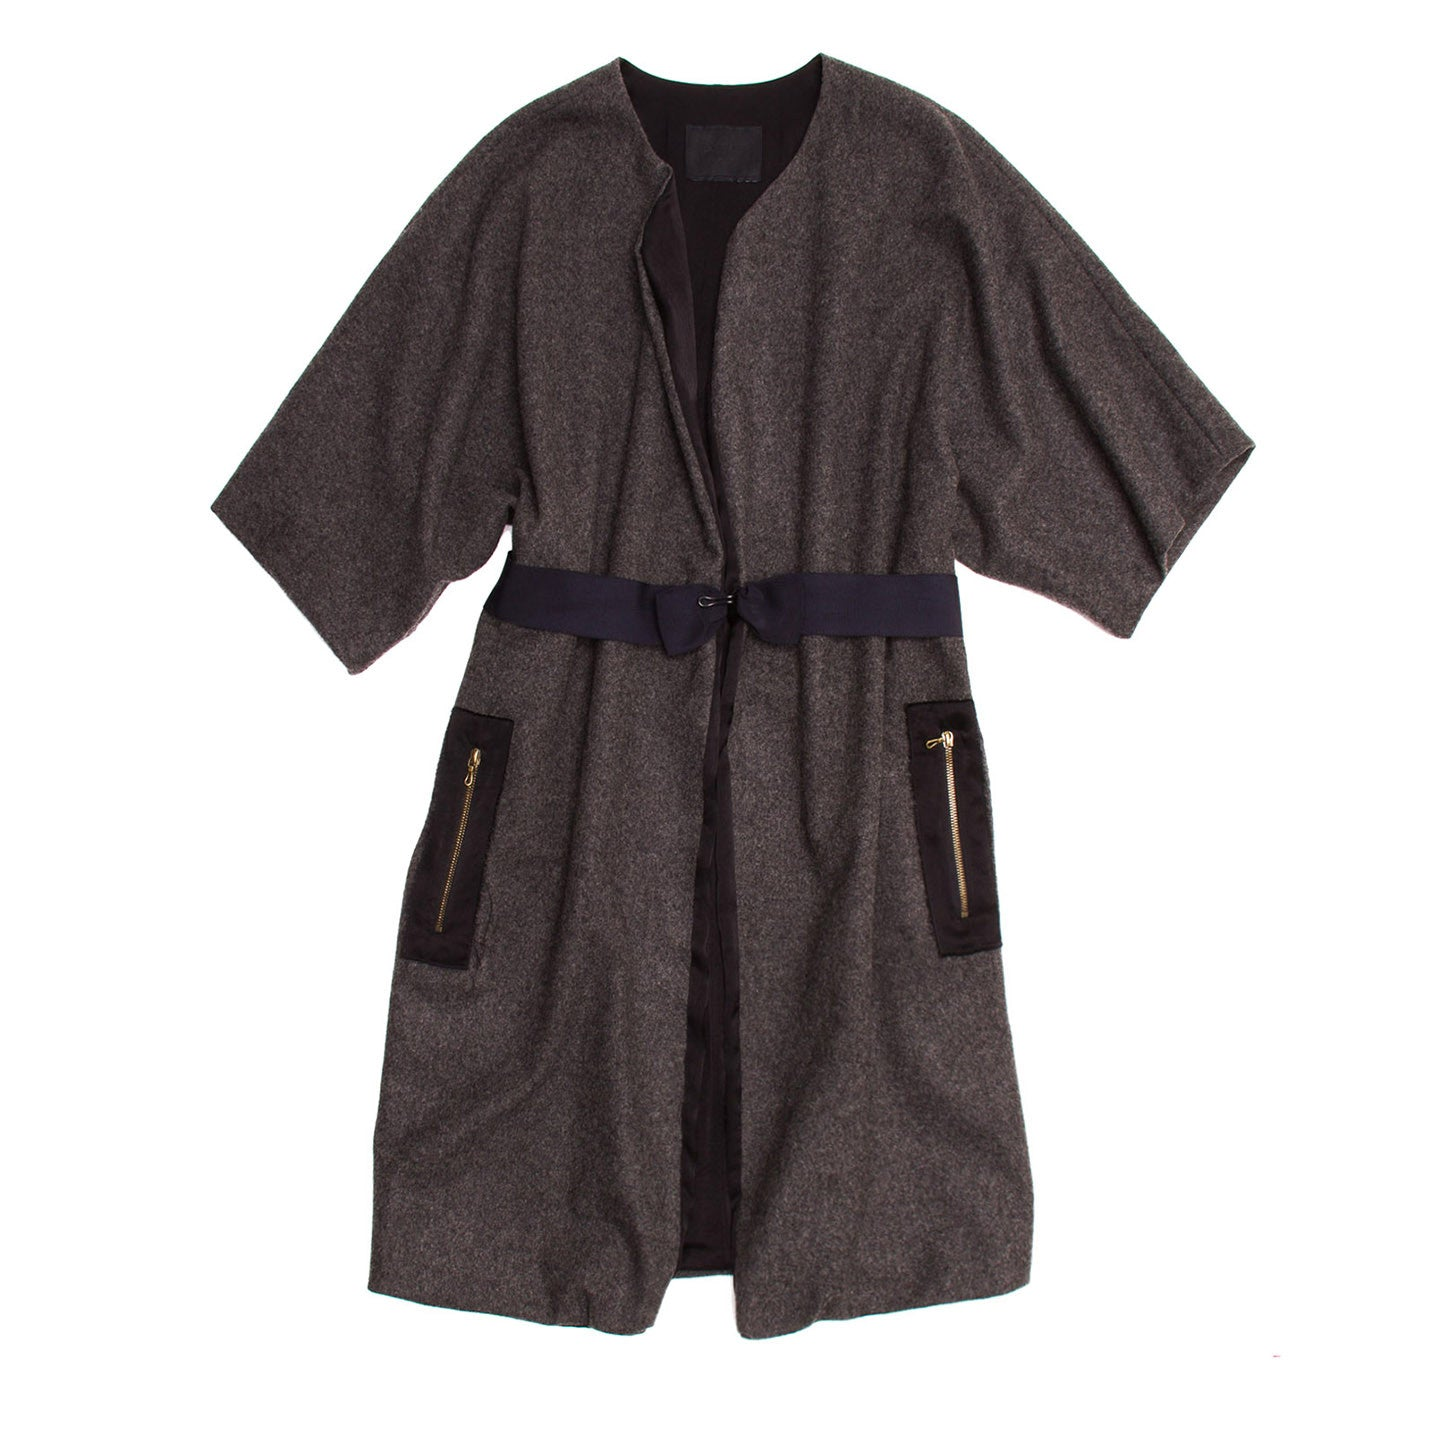 Find an authentic preowned Lanvin Grey Wool Kimono Sleeved Coat, size 40 (French) at BunnyJack, where a portion of every sale goes to charity.